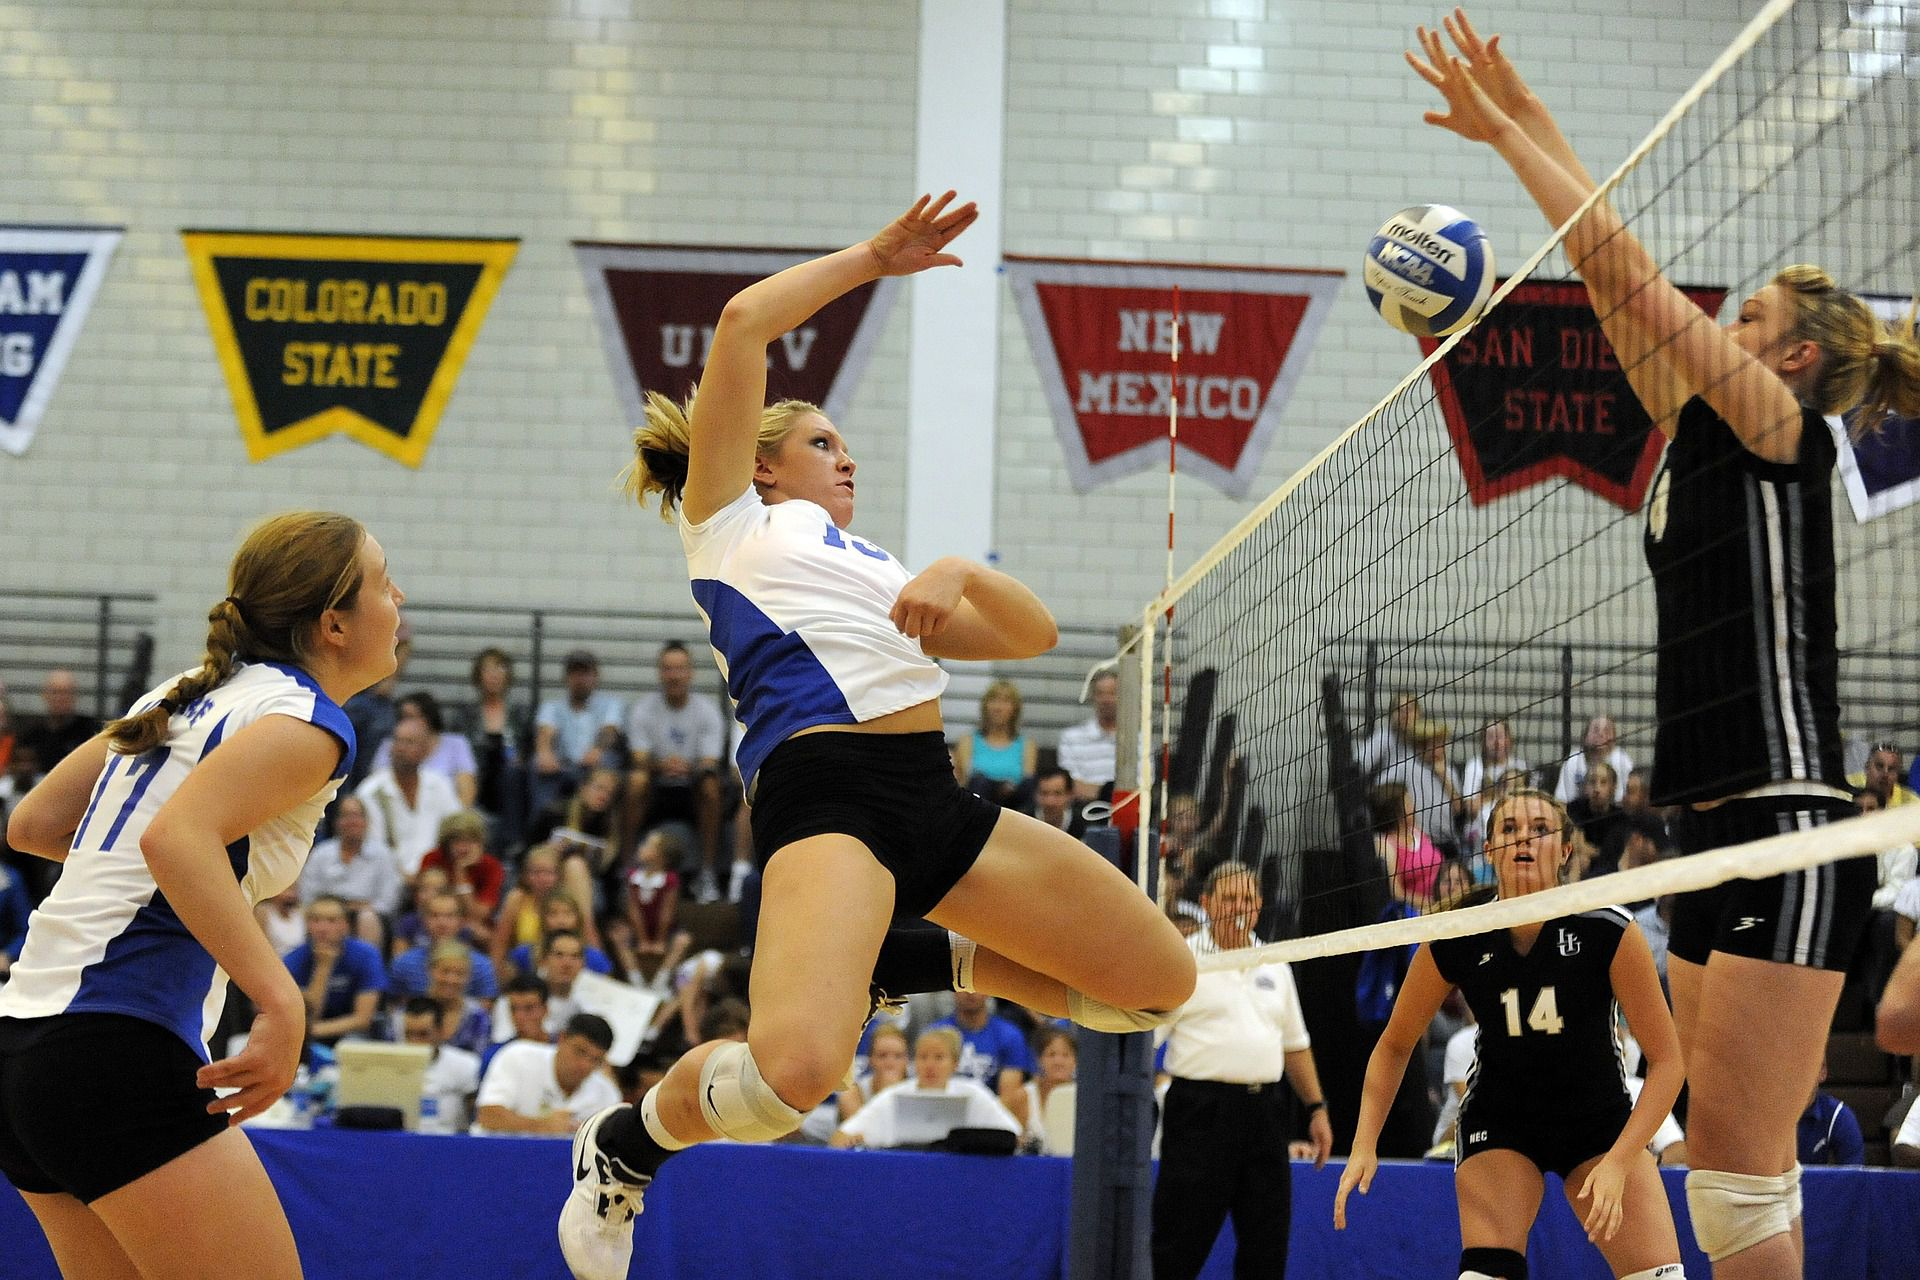 Joplin volleyball finishes strong, wins home opener - SoMo